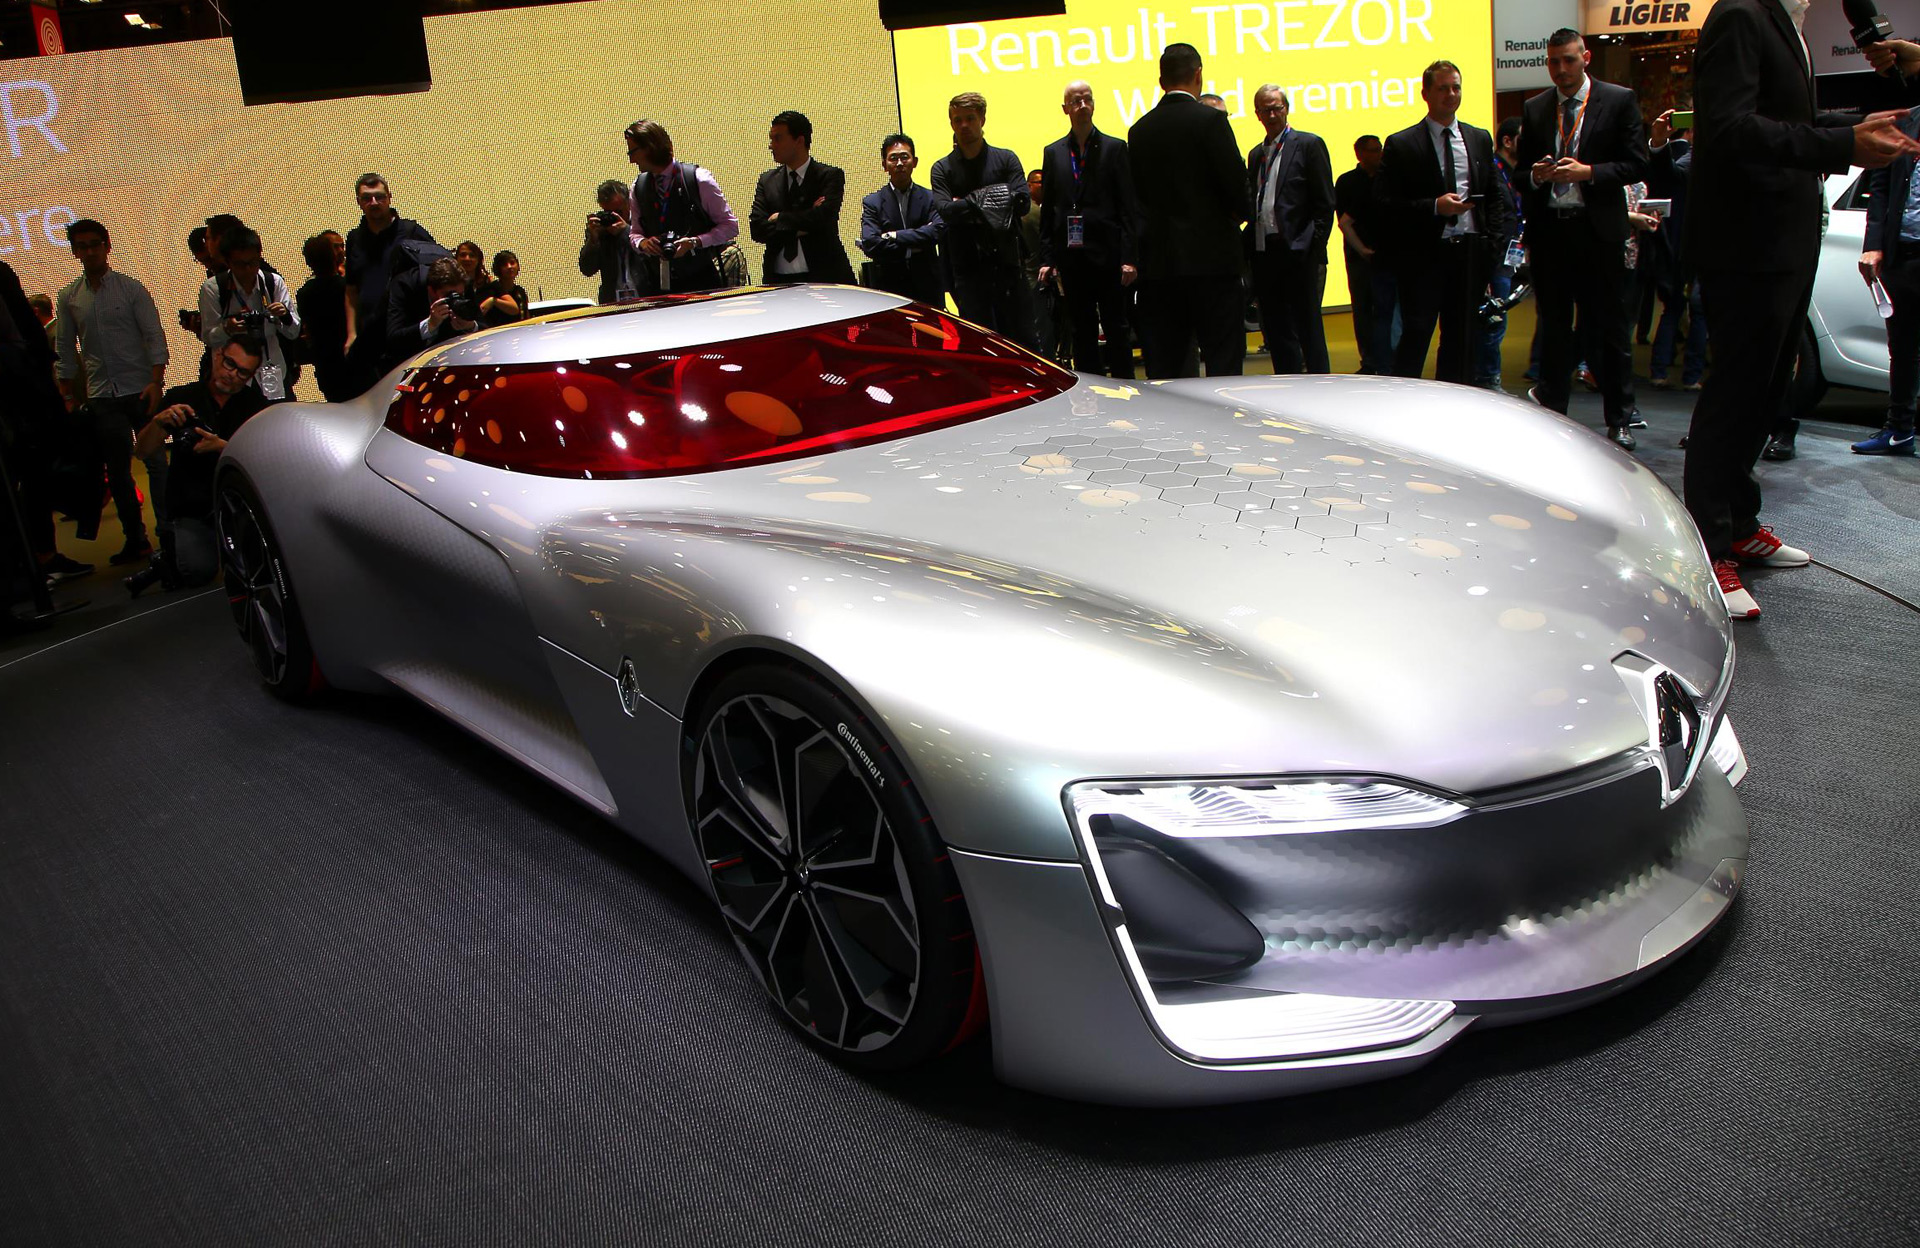 Trezor Concept Is An Electric GT That Previews Renault's